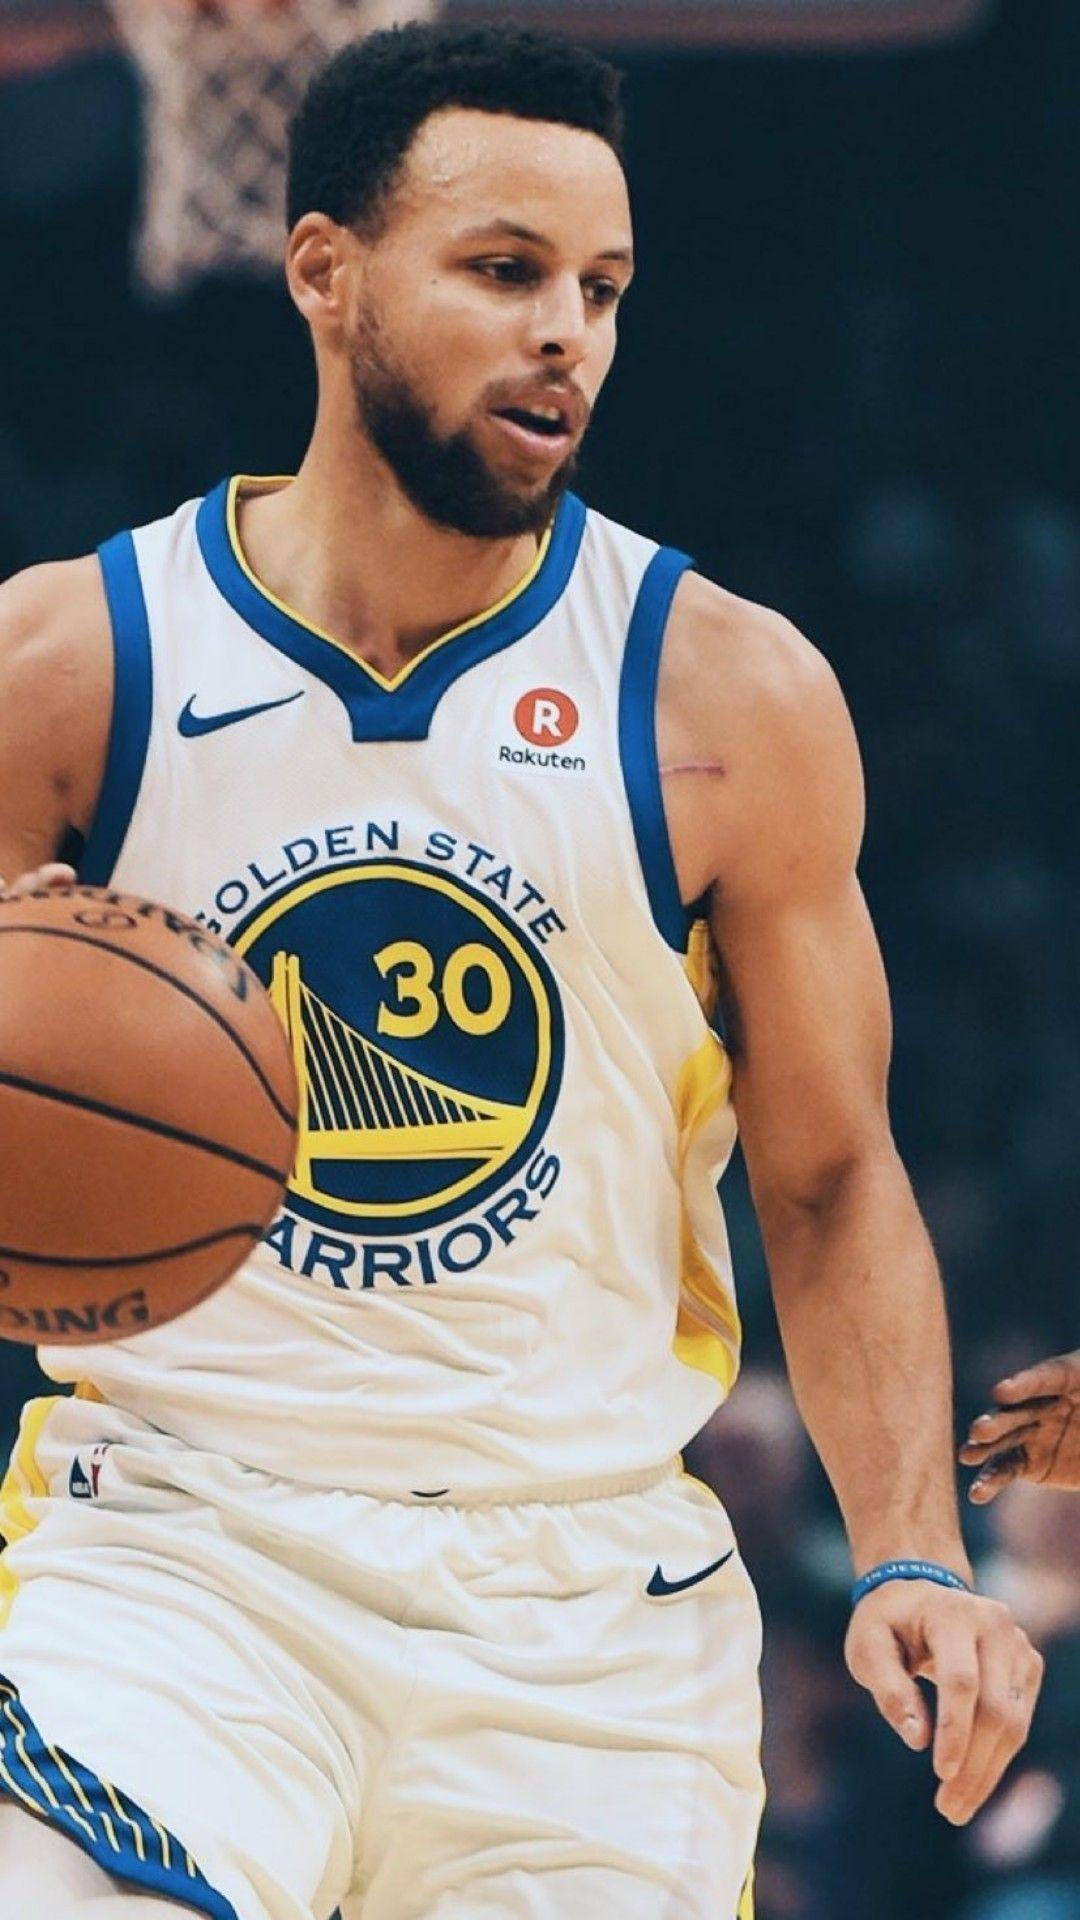 Stephen Curry Wallpapers for Android - APK Download